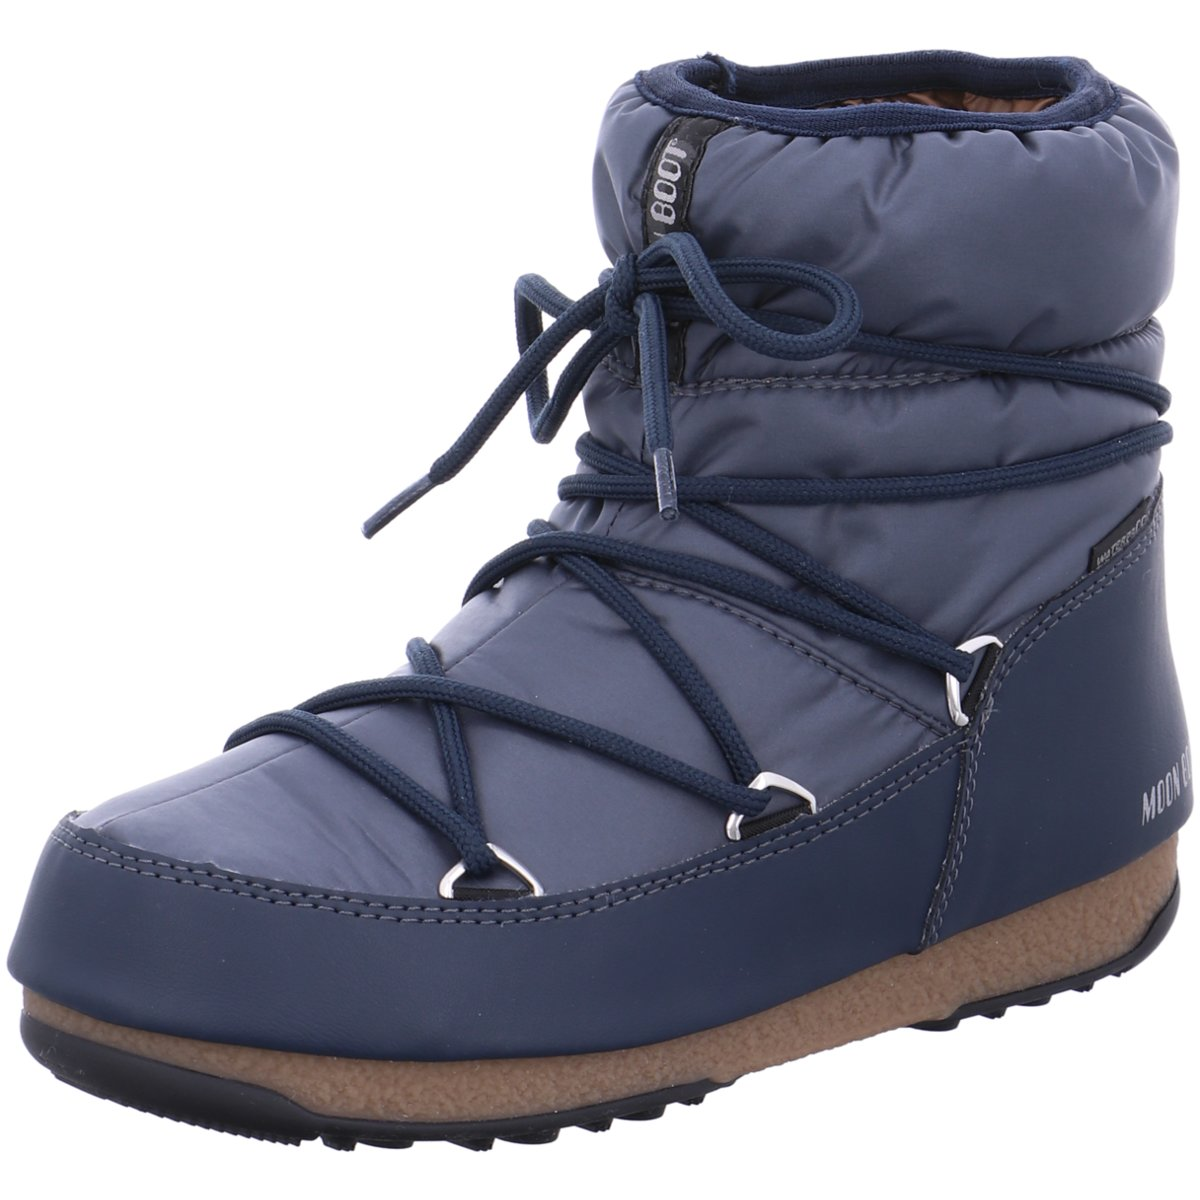 Moon Stiefel Damen Stiefeletten Low Nylon 24006200-006 blau 540218